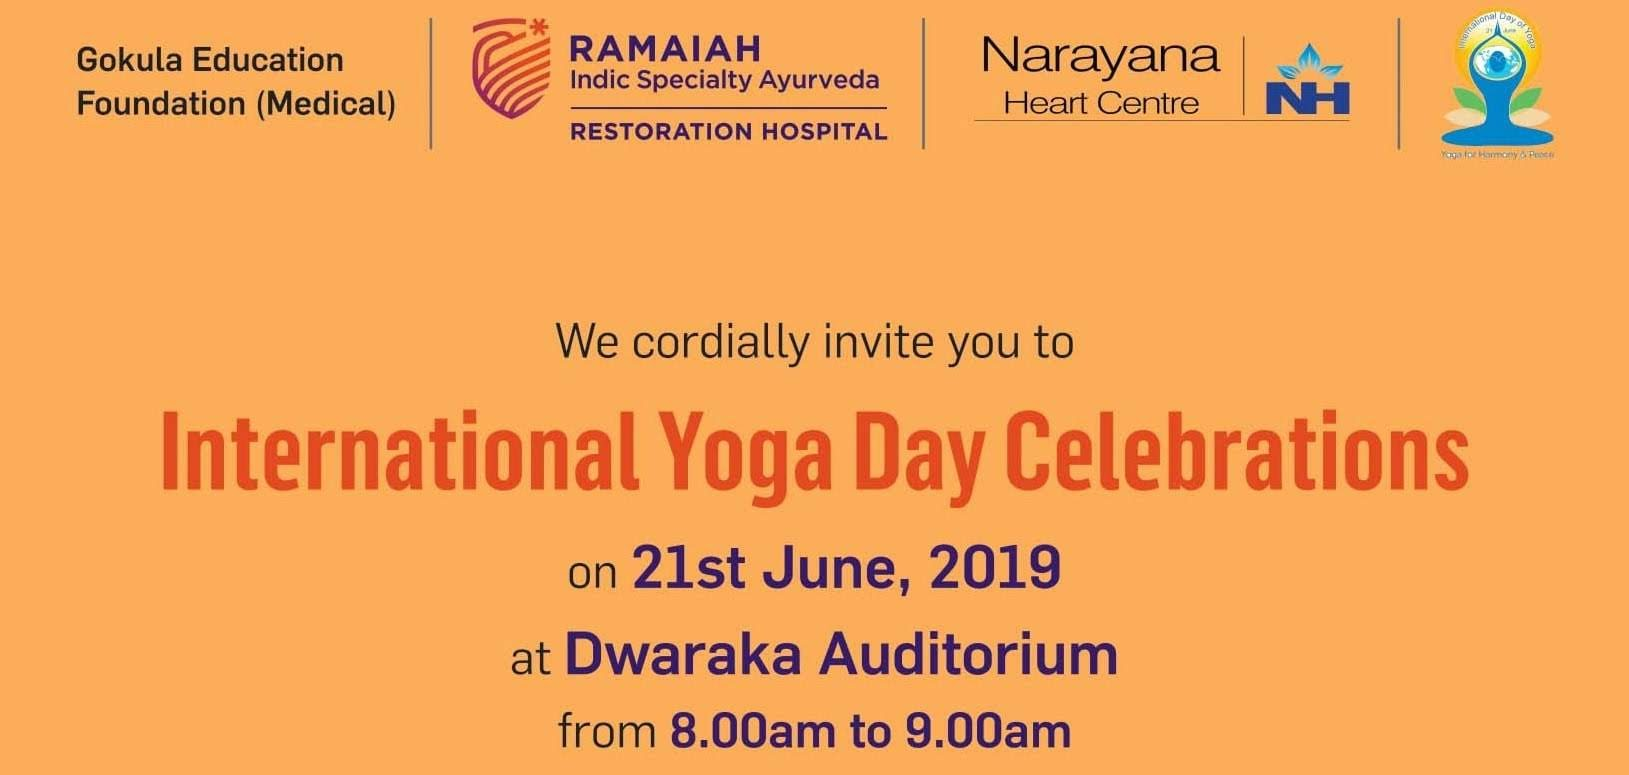 Intl Yoga Day Celebrations